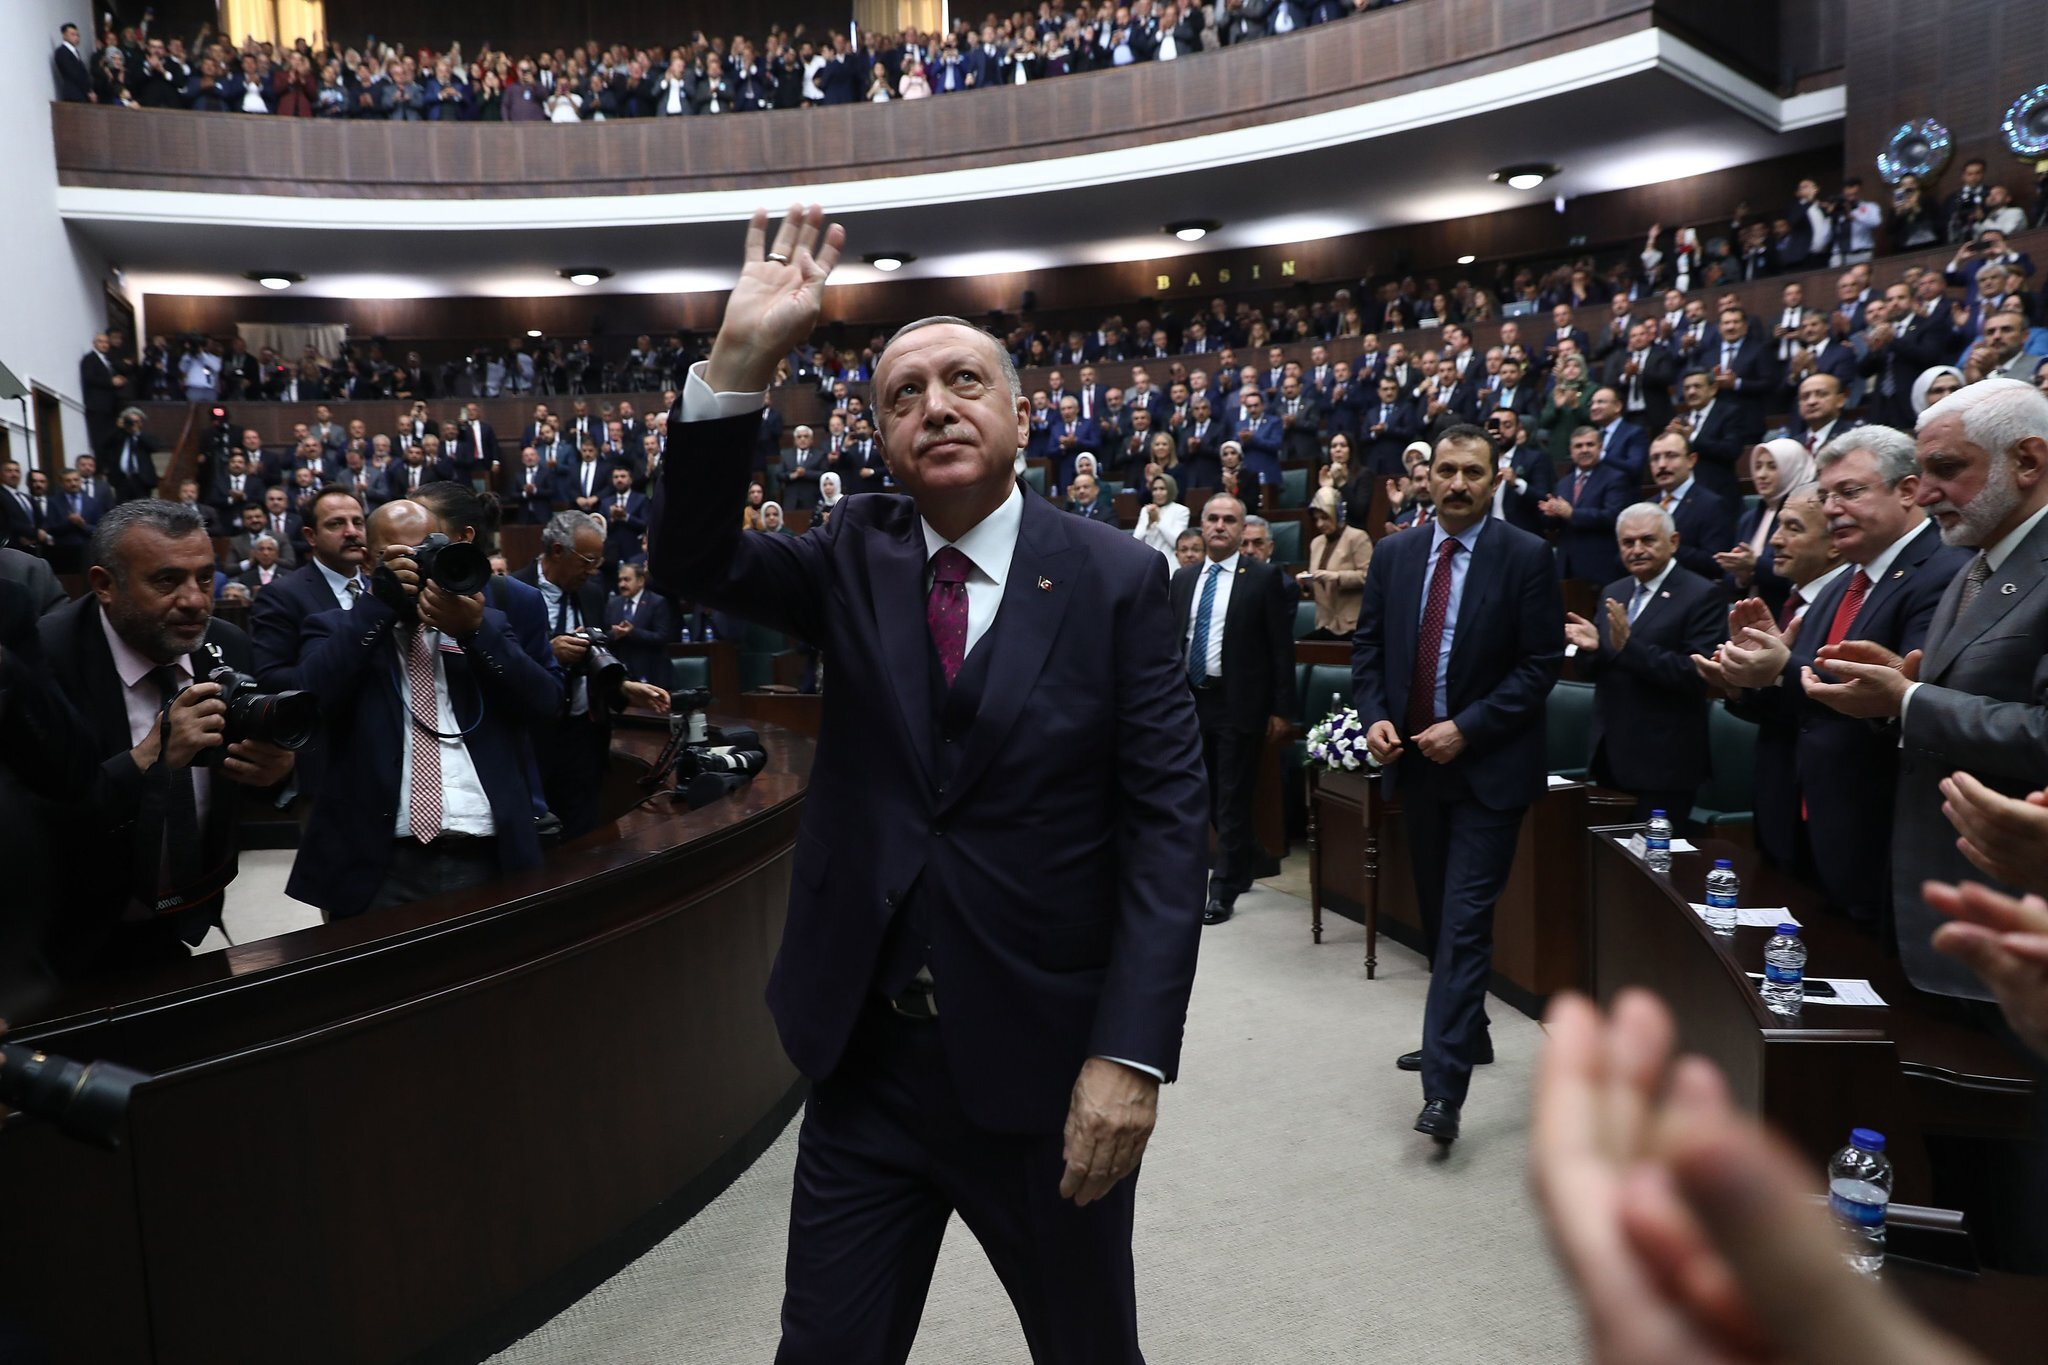 Erdogan's Dismissive Retort on Armenian Genocide Shows How Low U.S. Ties Have Sunk - I spoke to The New York Times about the House's decision to recognize the Armenian Genocide and whether it would further deteriorate U.S.-Turkey relations.(October 2019)Read more here.